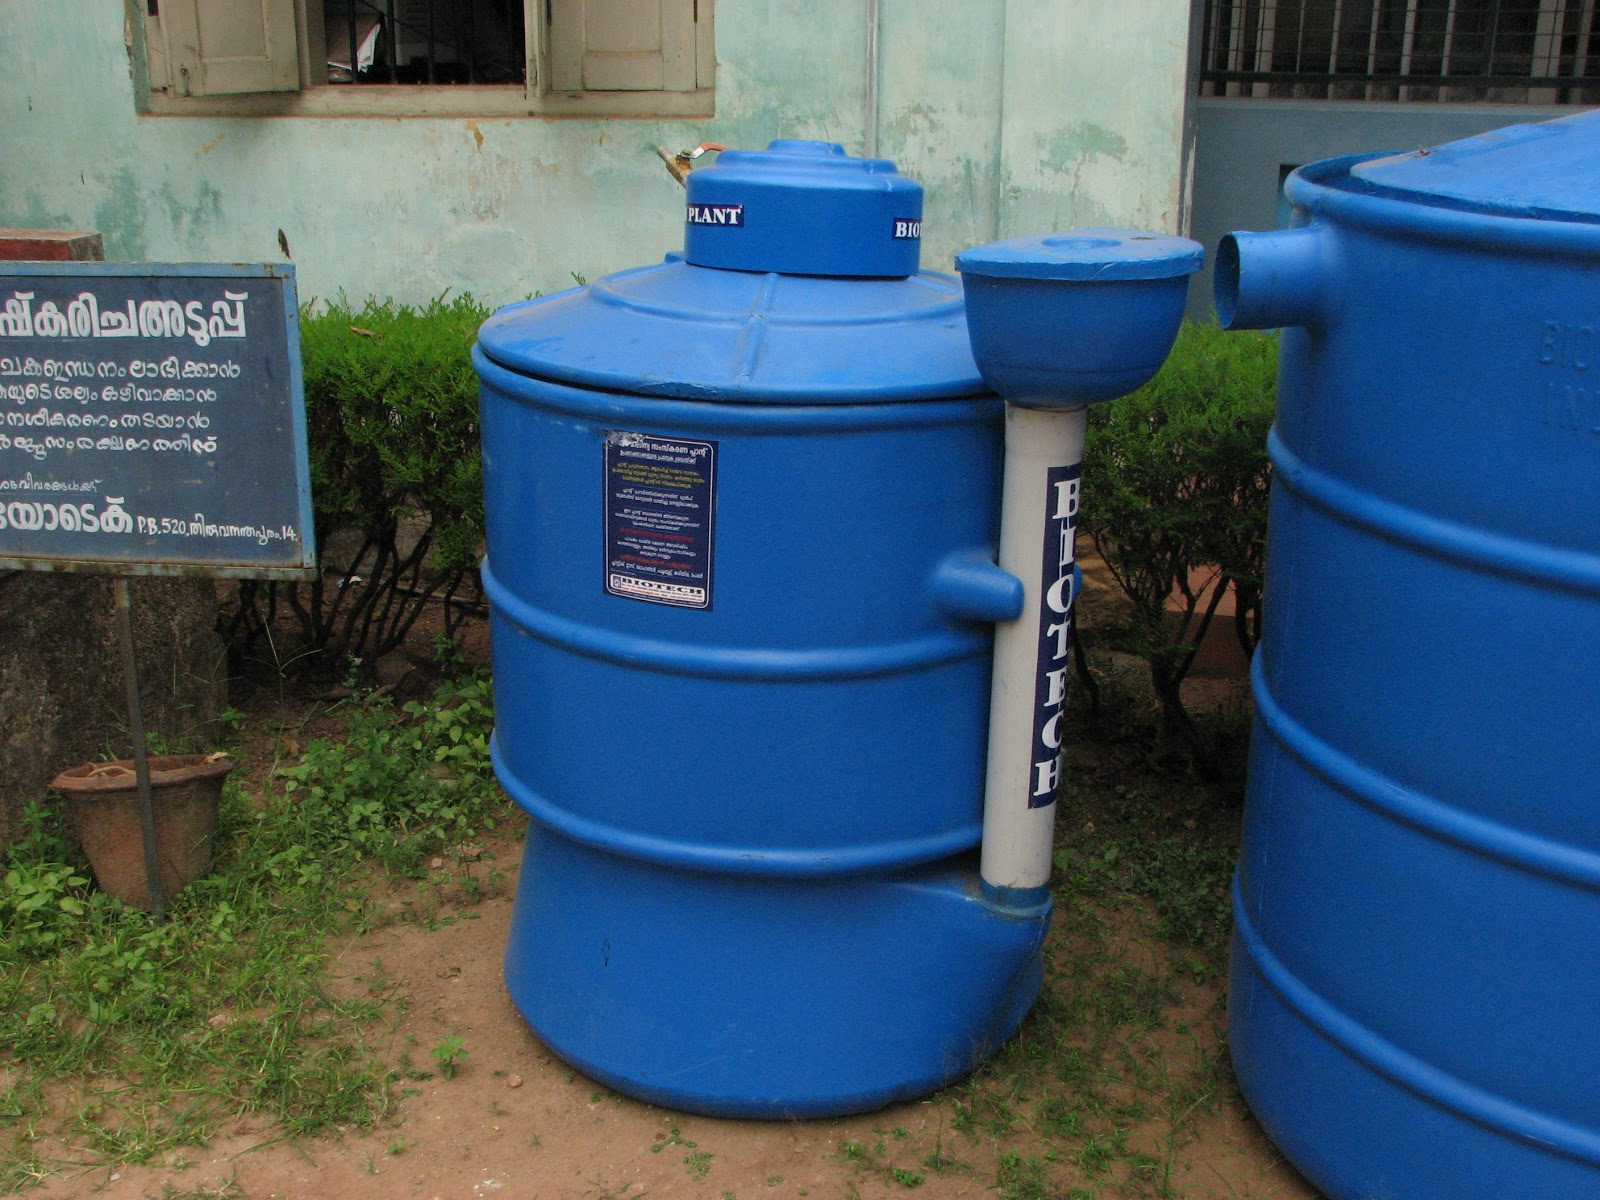 Small scale Biomethanation (Biogas) in India ~ Biogas Plant